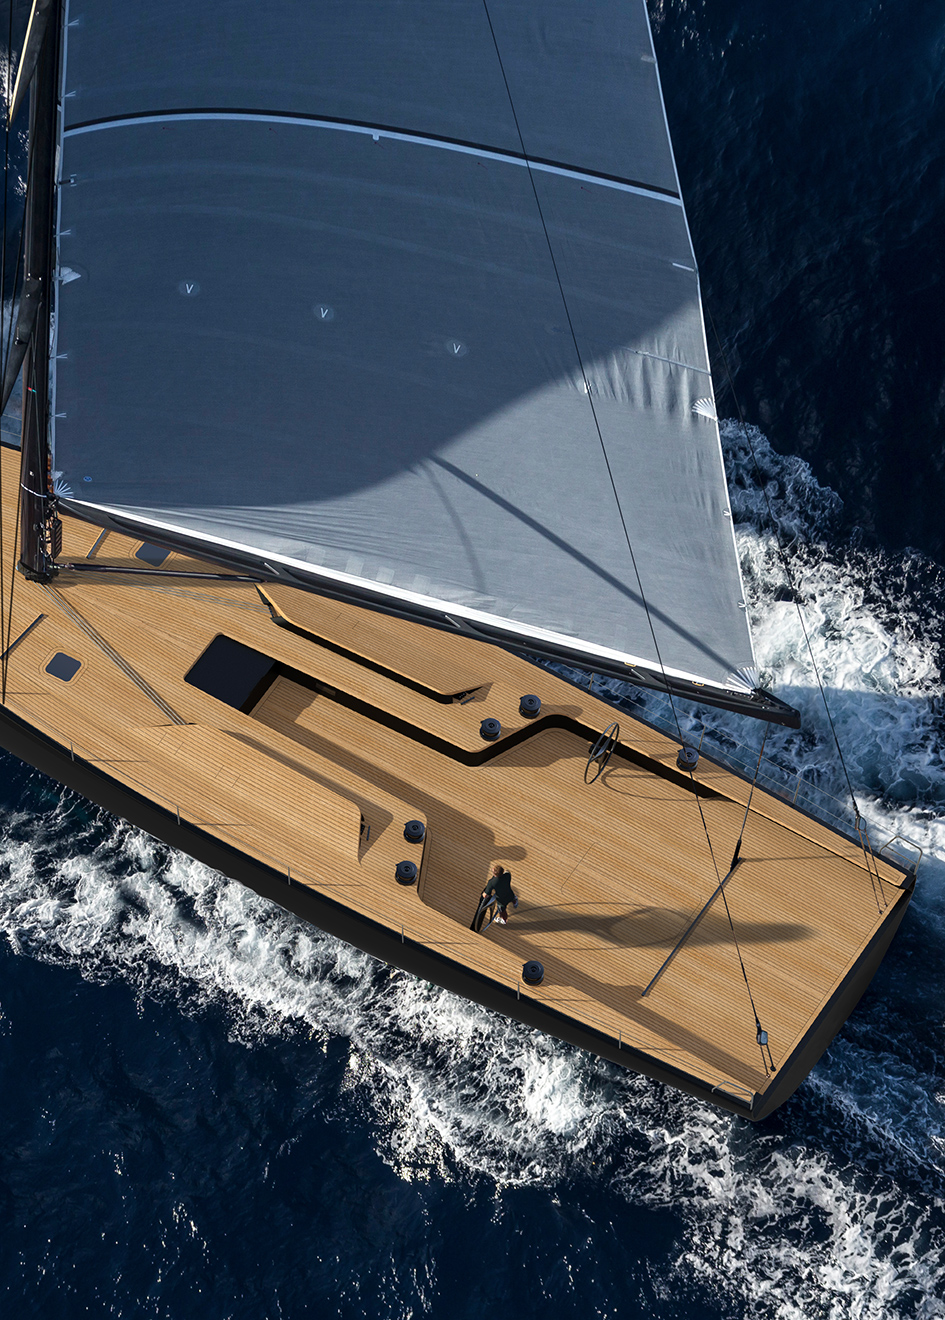 aerial-view-of-the-wally-93-sailing-yacht